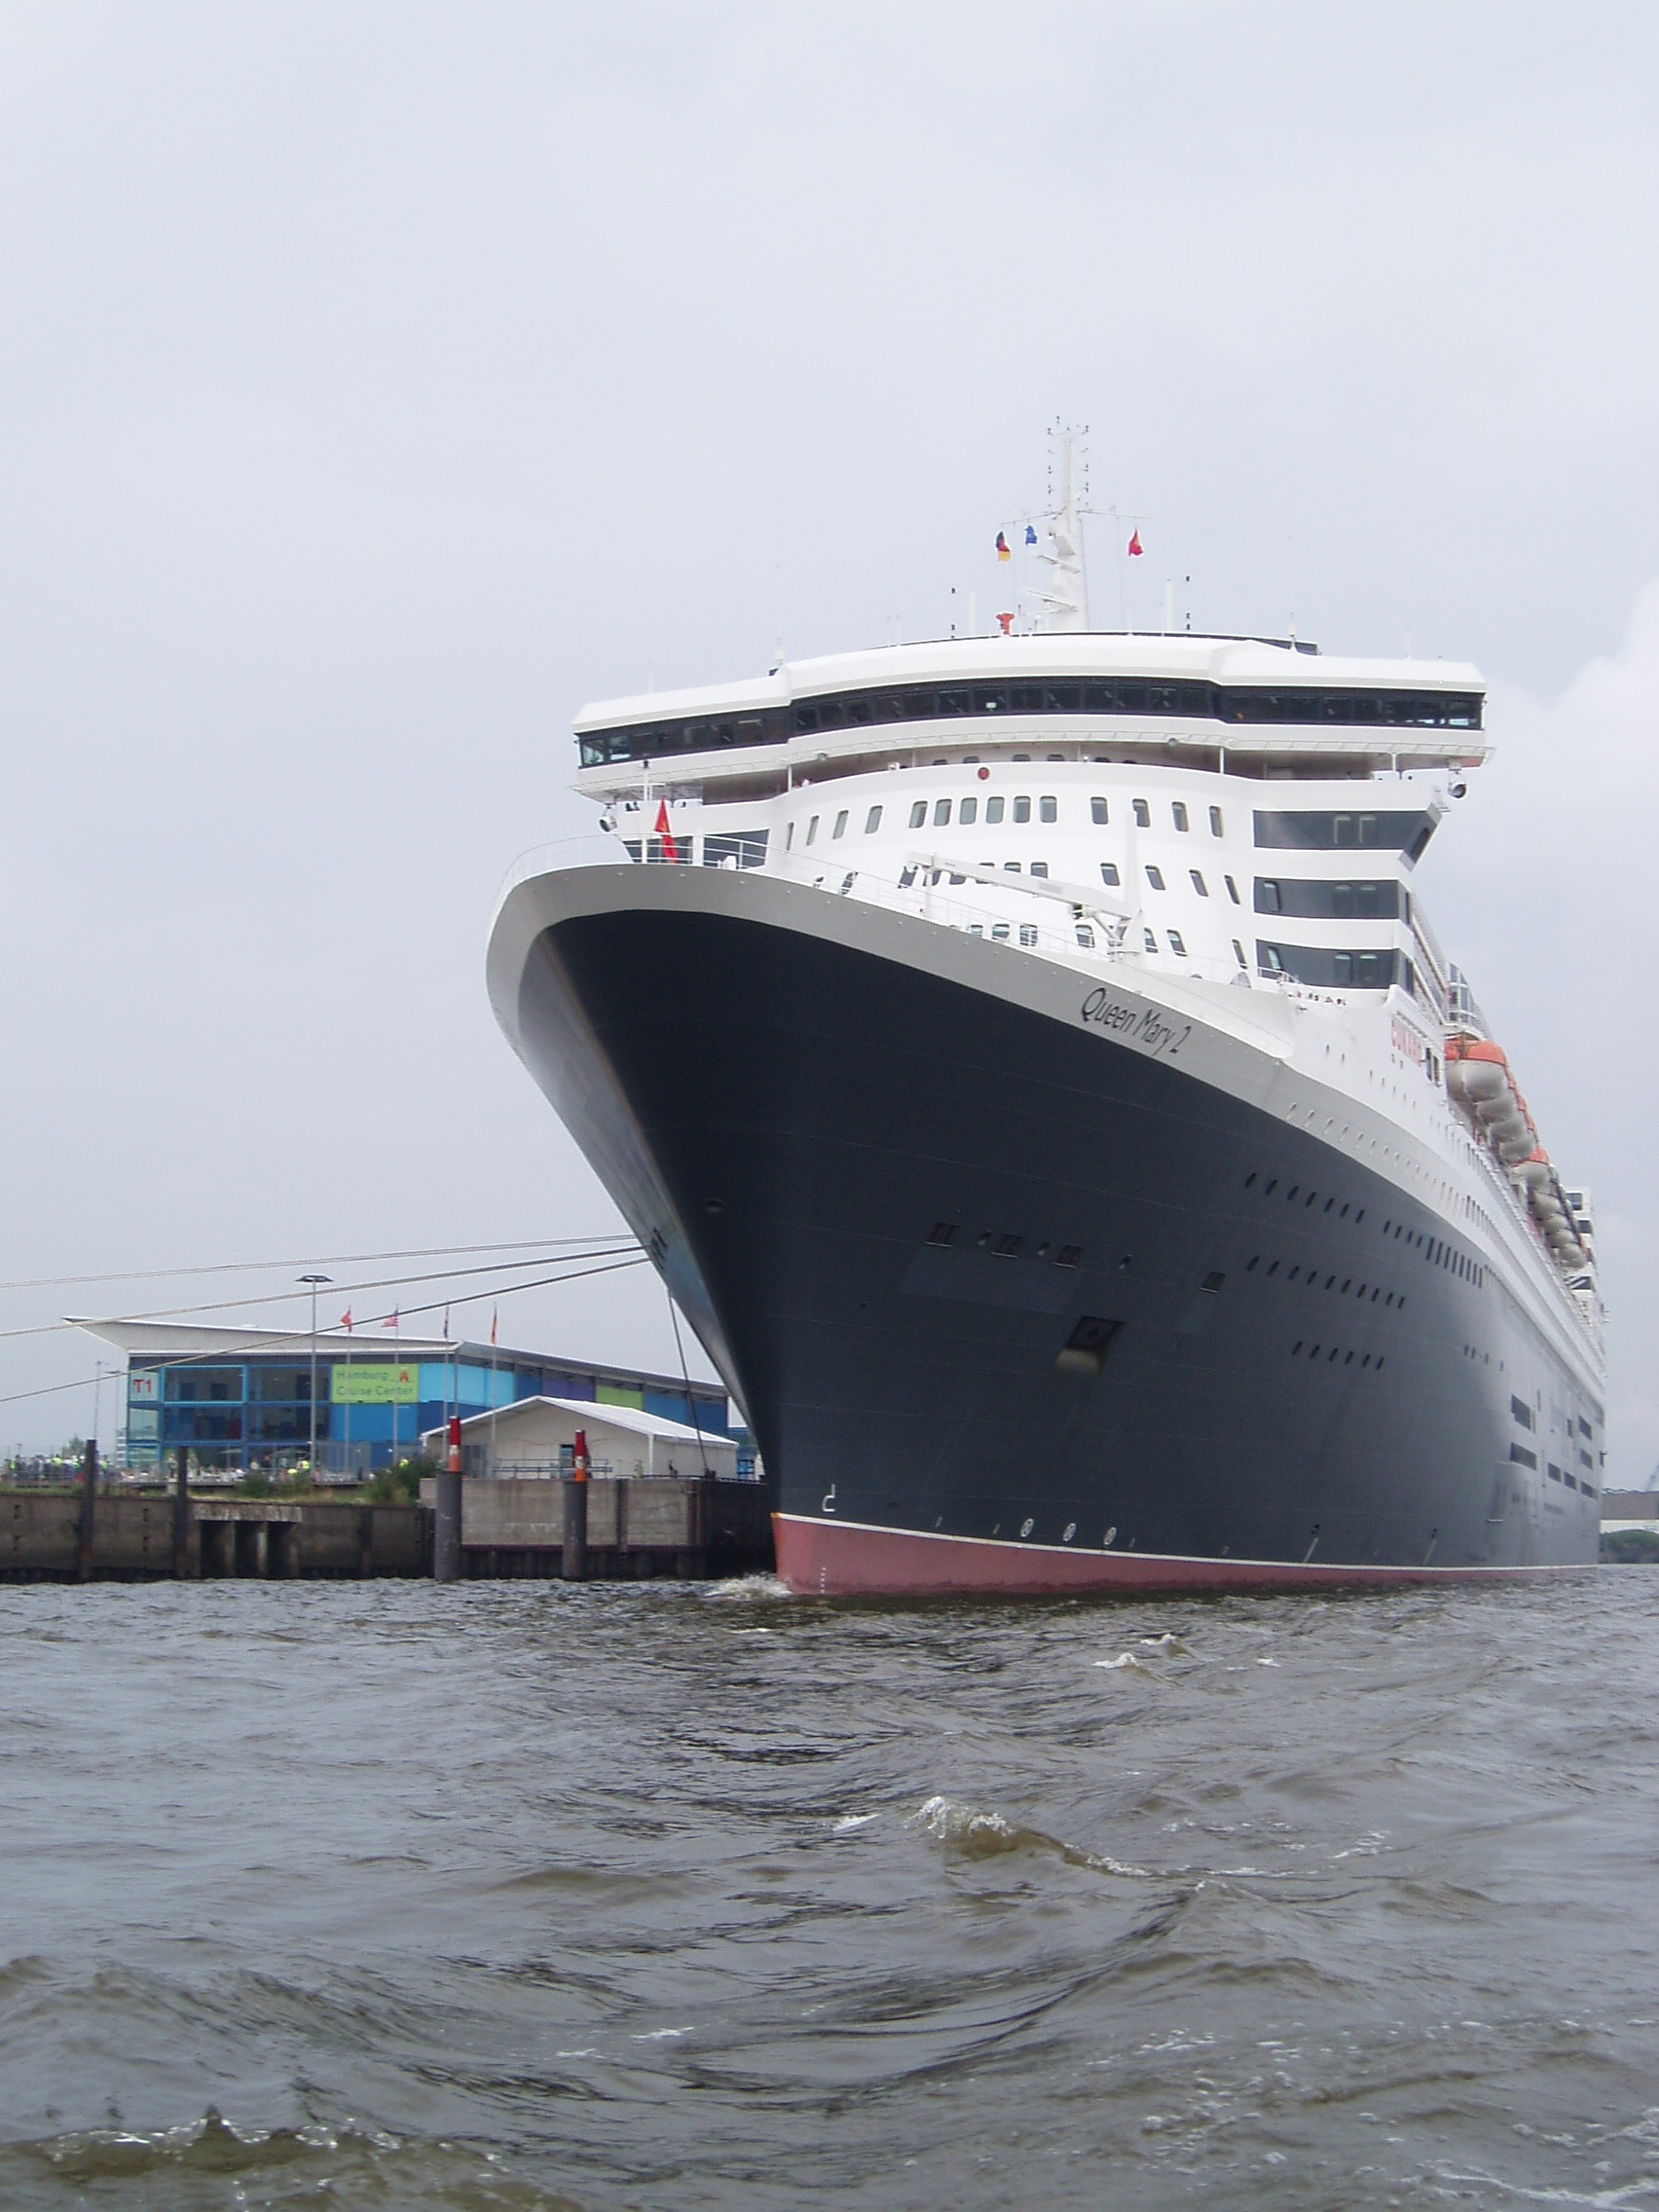 datei rms queen mary 2 in hamburg wikipedia. Black Bedroom Furniture Sets. Home Design Ideas